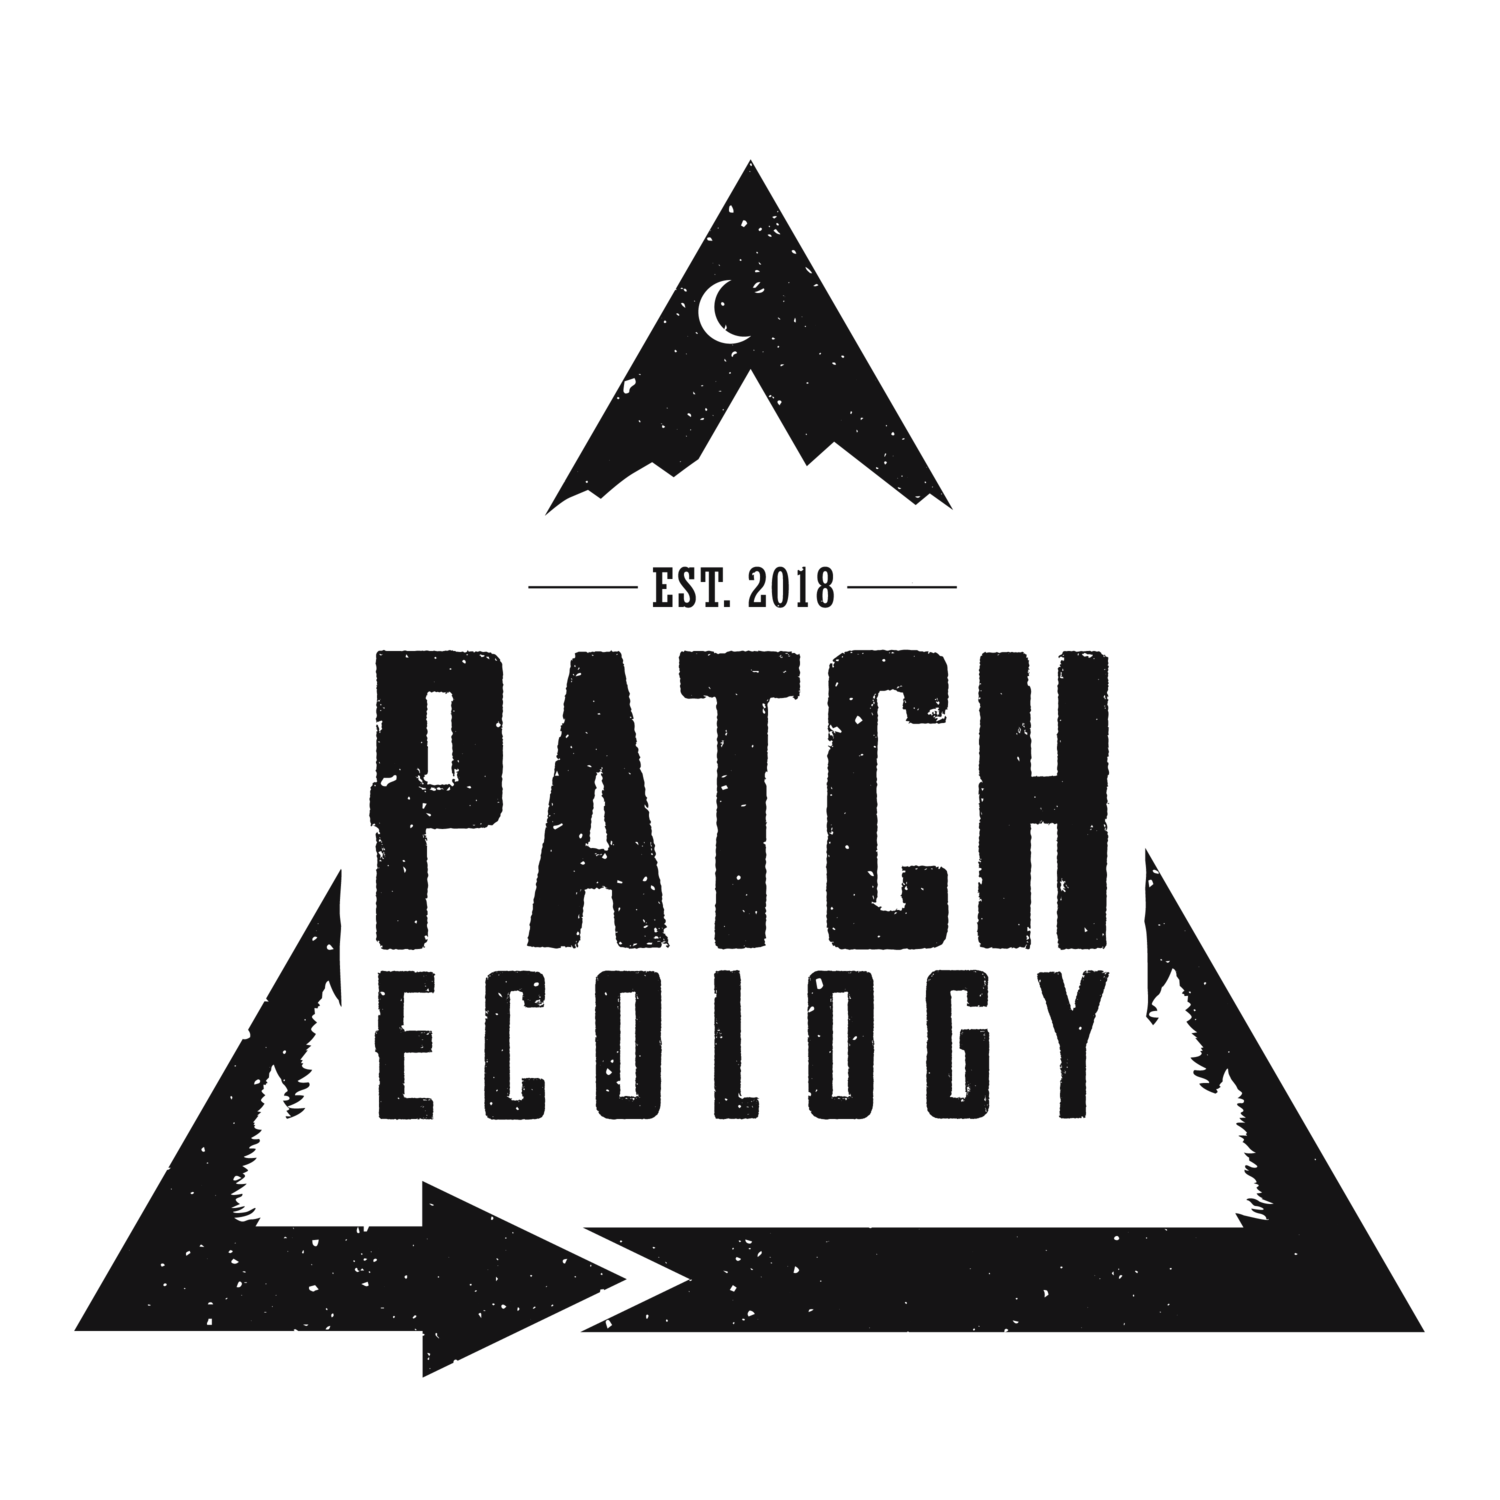 PatchEcology